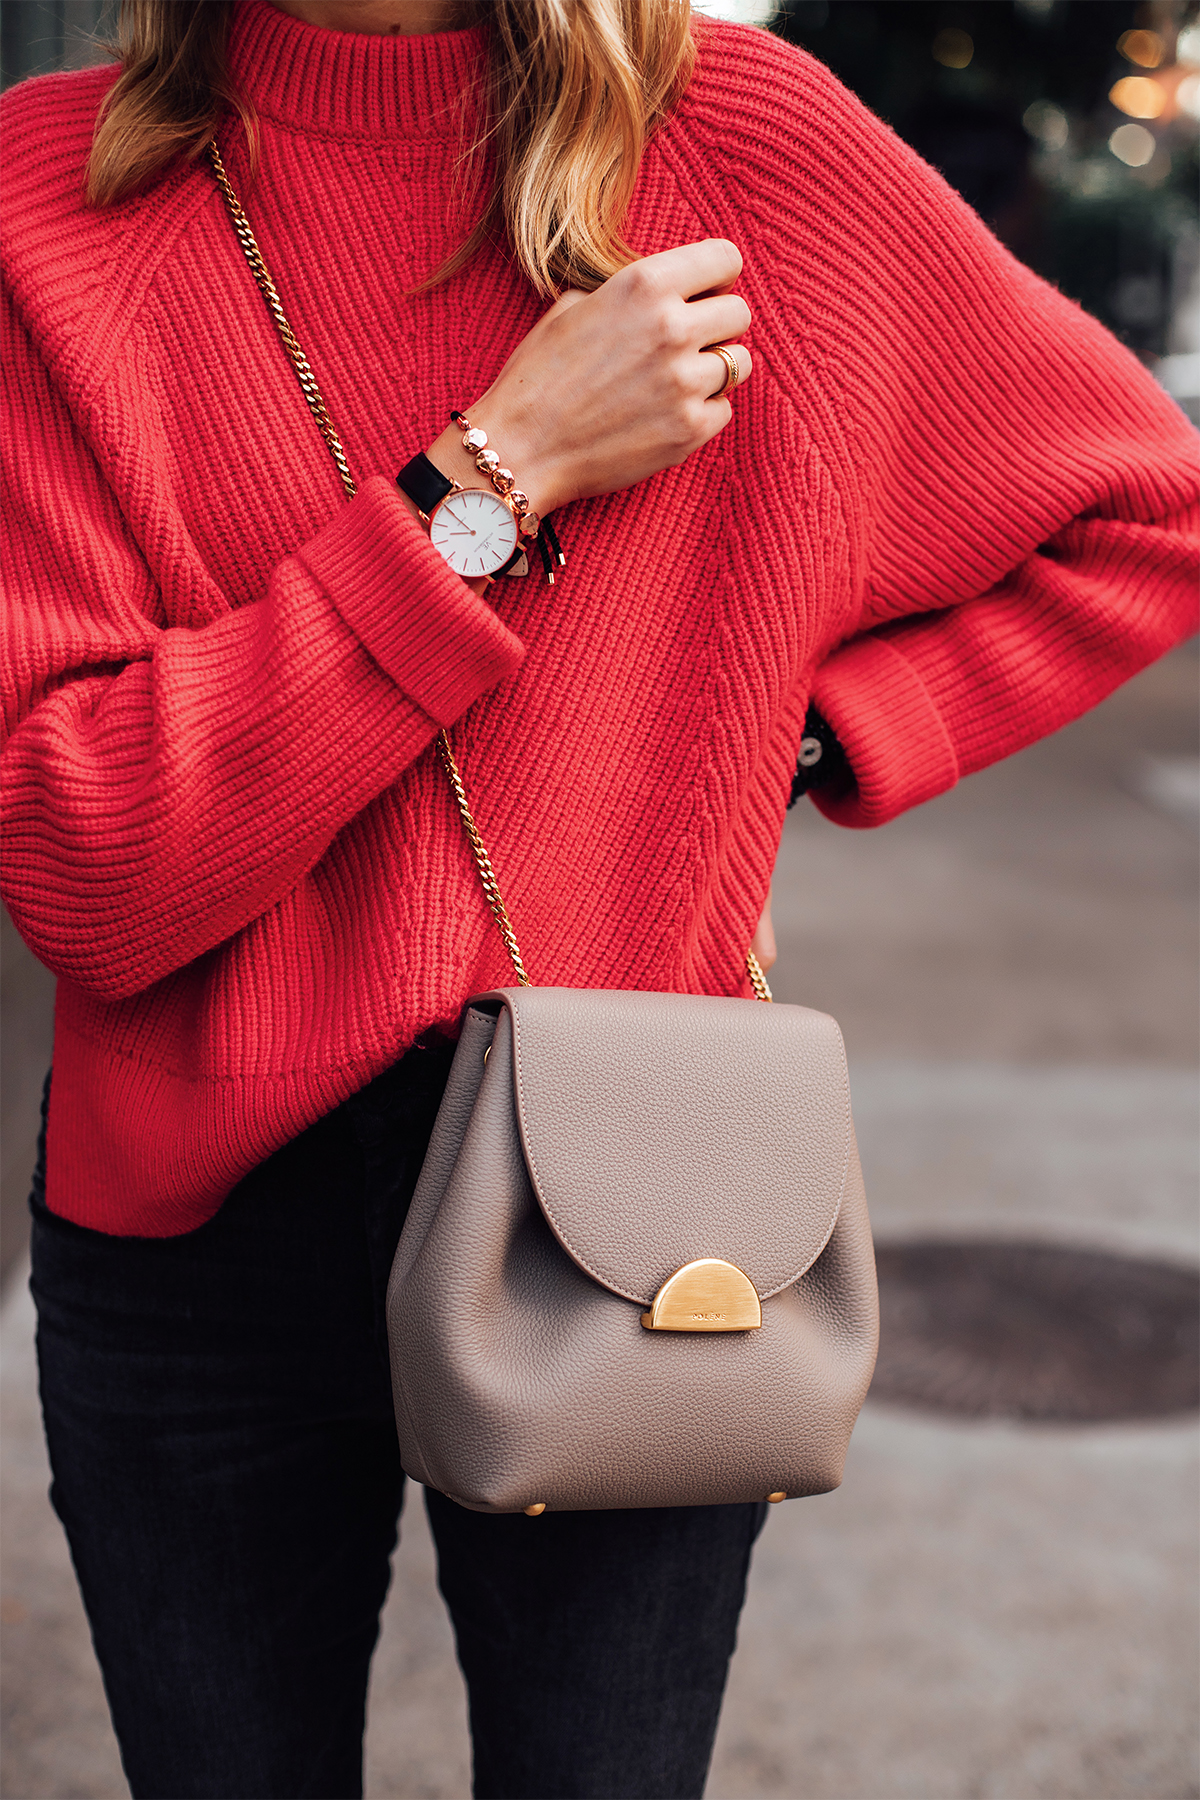 Blonde Woman Wearing AllSaints Red Sweater Polene Taupe Crossbody Handbag Victoria Emerson Black Rose Gold Watch Rose Gold Beaded Bracelet Fashion Jackson San Diego Fashion Blogger Street Style